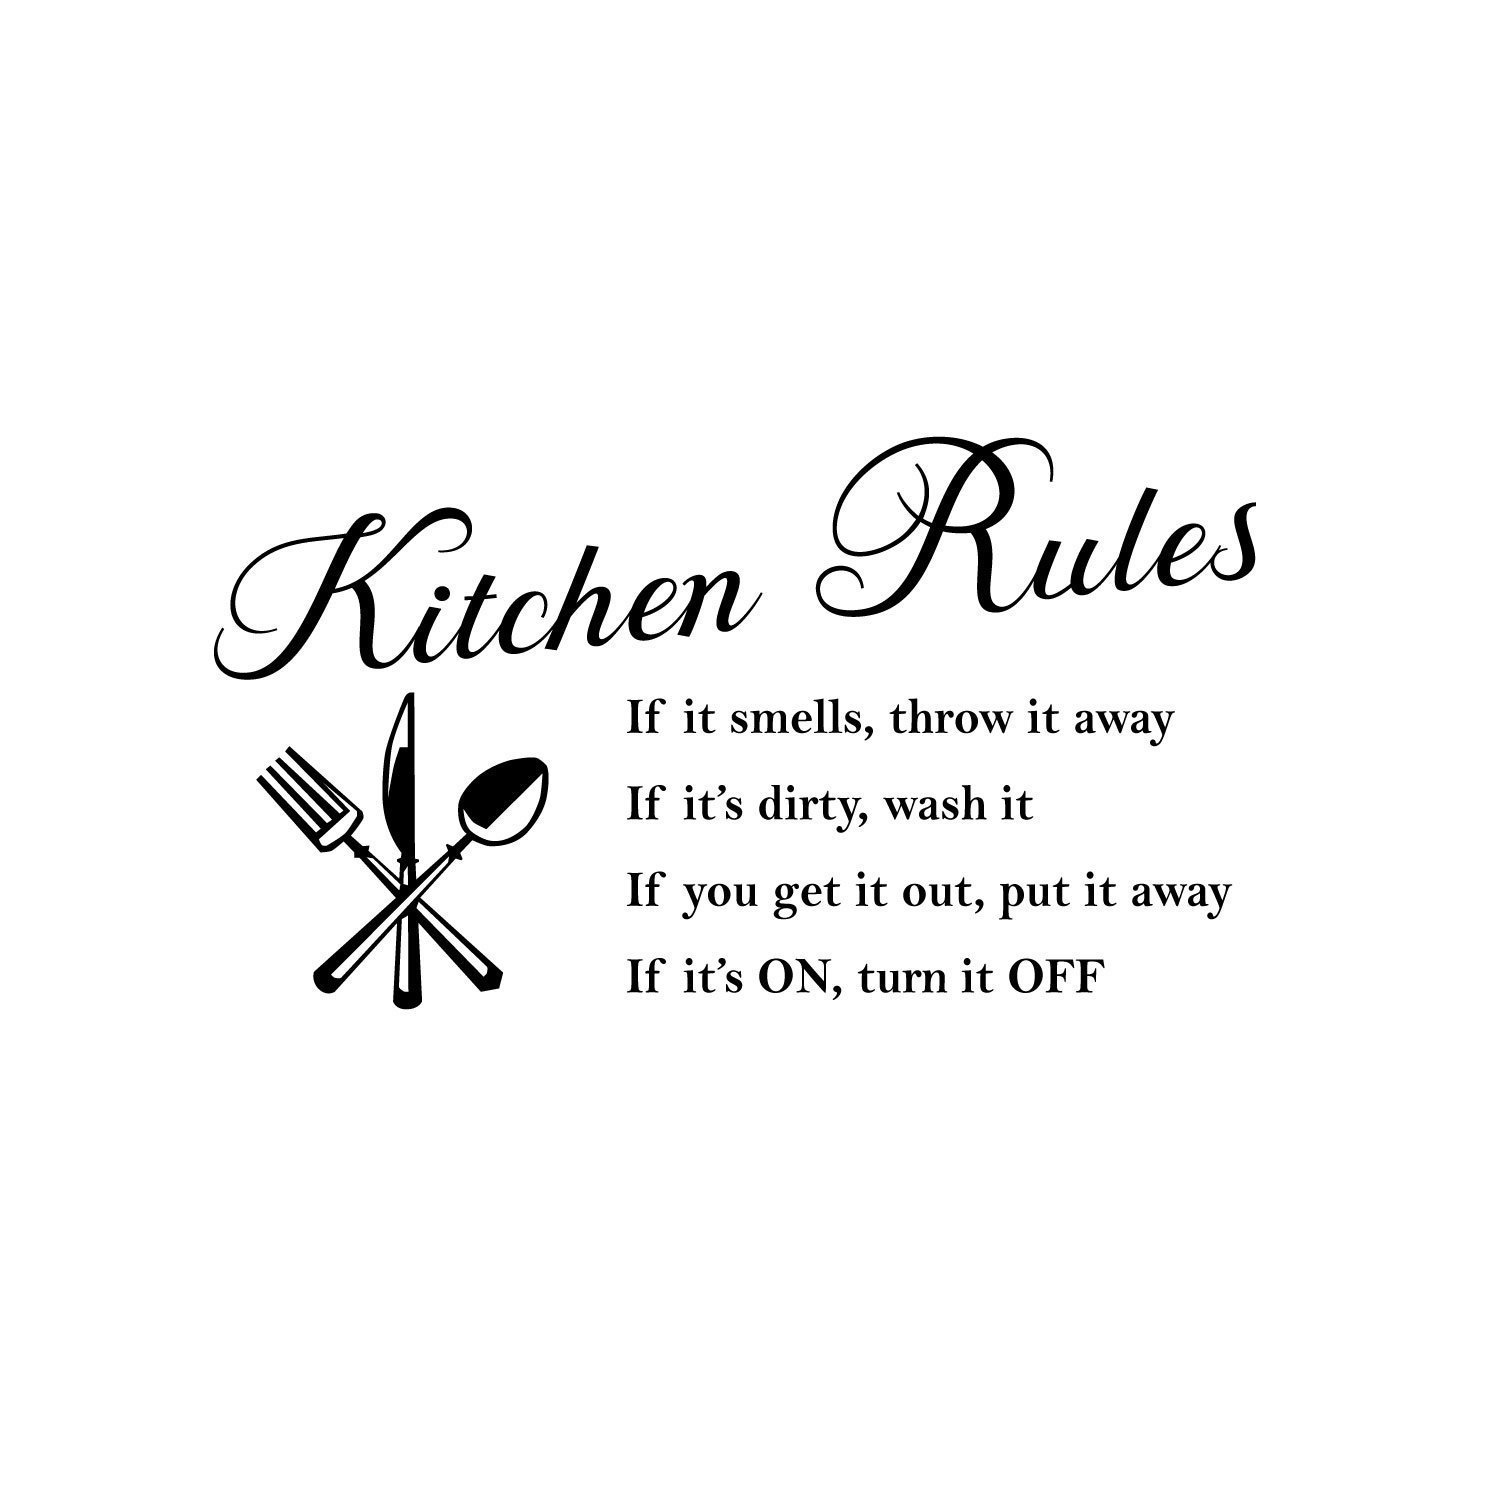 Kitchen Rules Words Wall Stickers Decal Home Decor Vinyl Art Mural